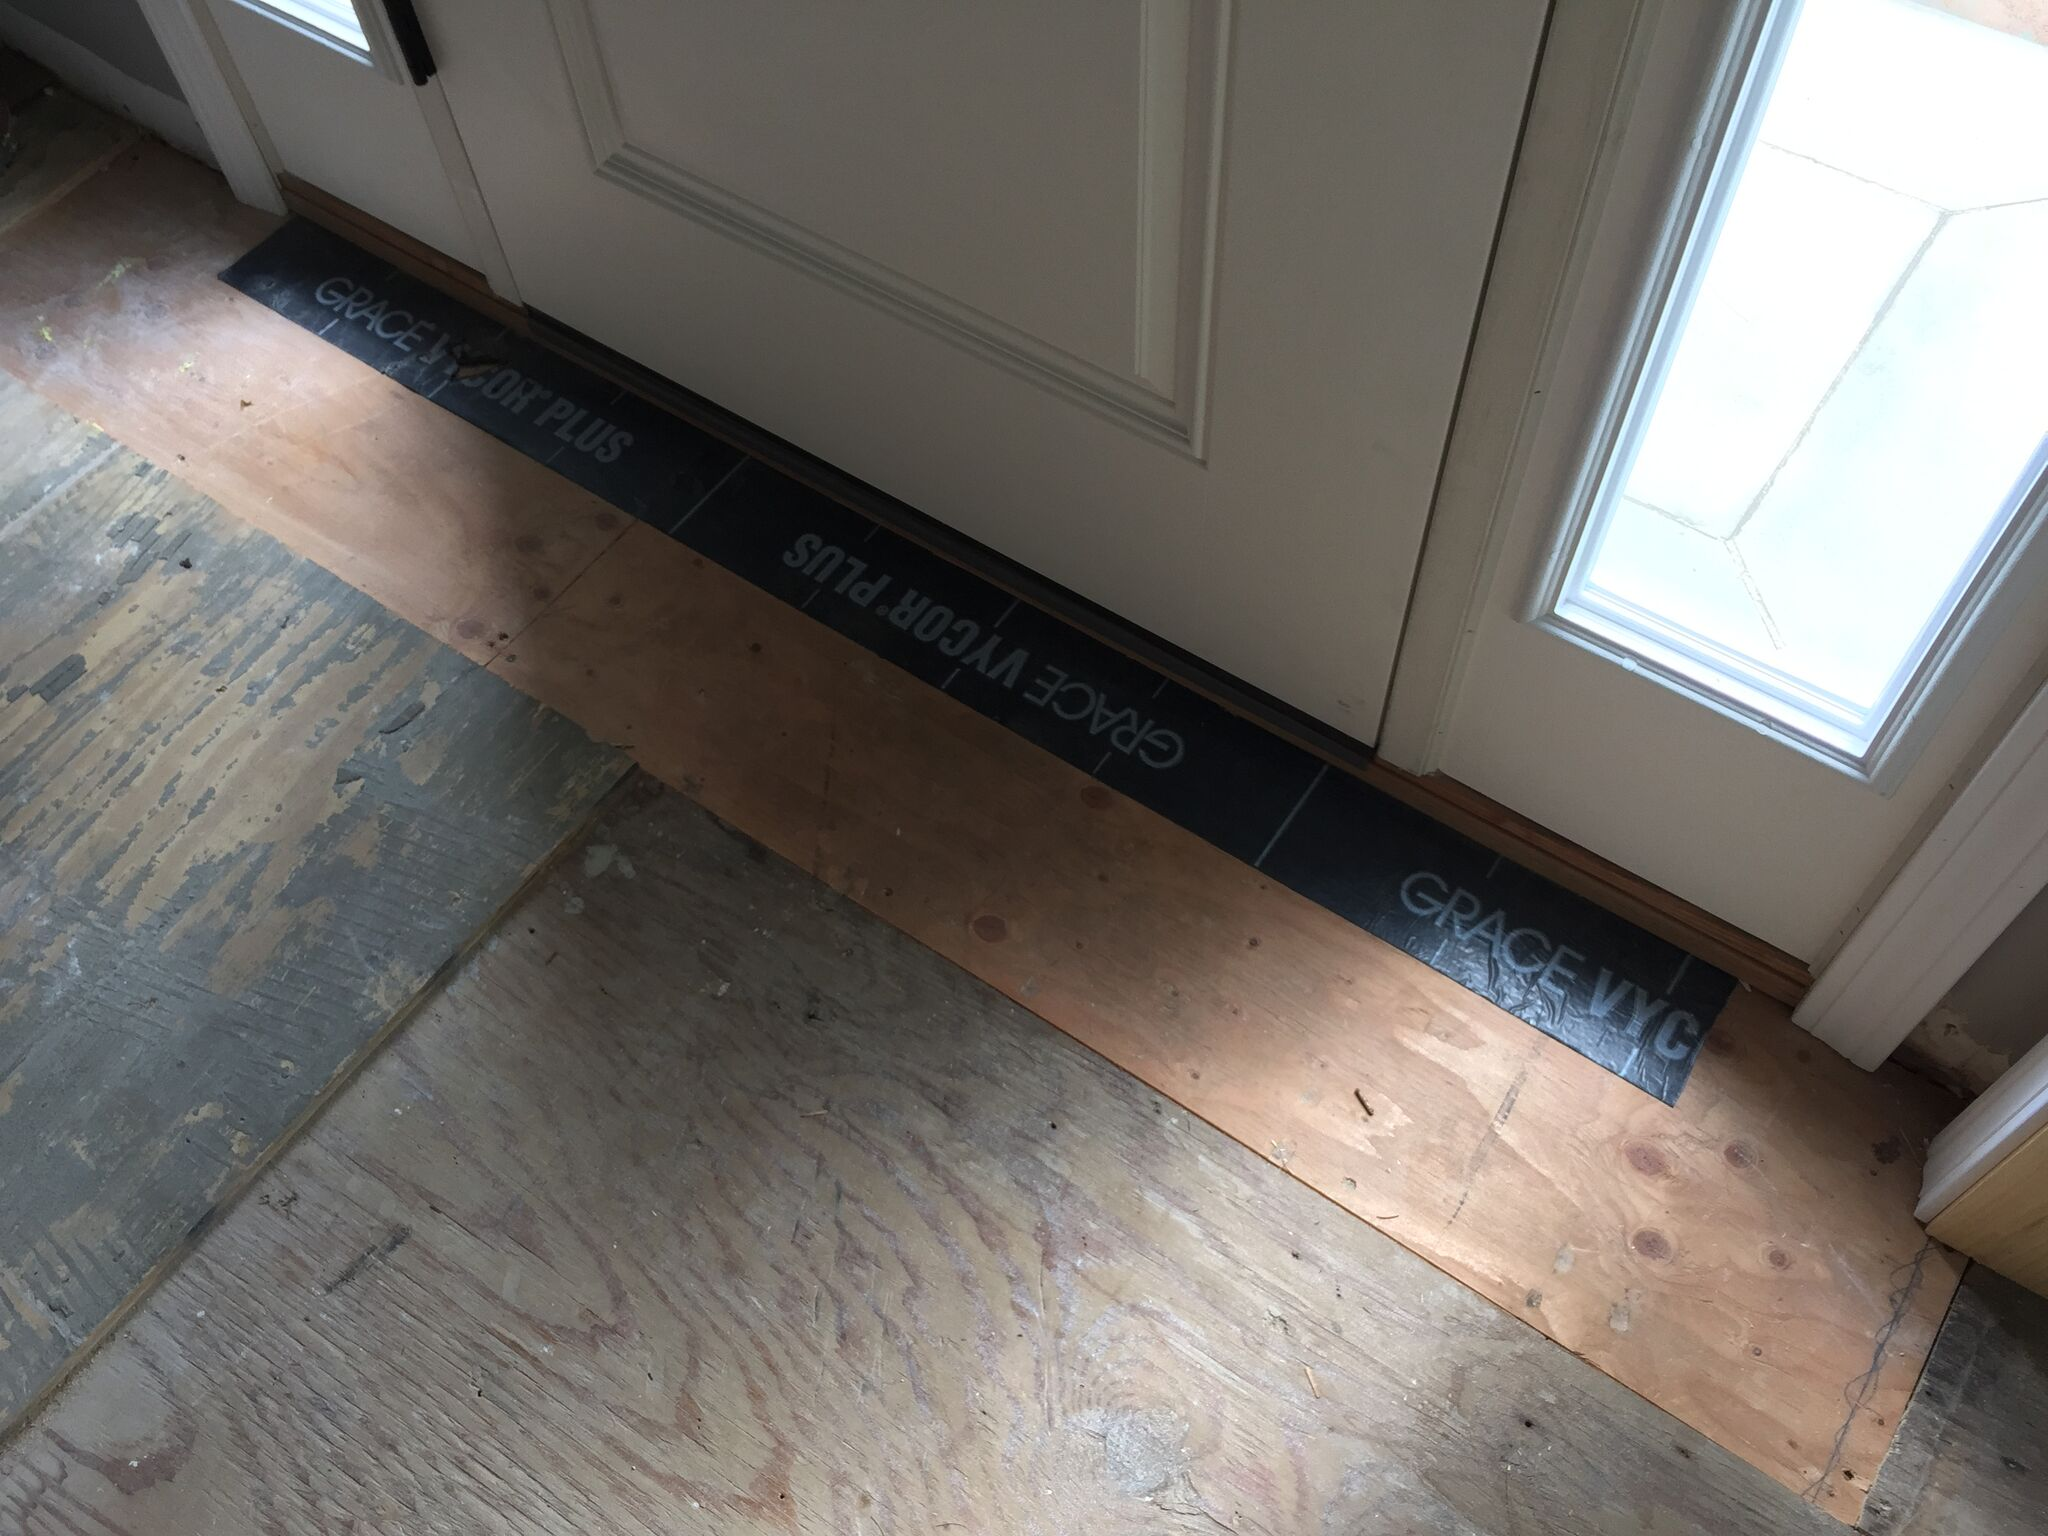 New plywood flooring and flashing tape to protect area by door opening